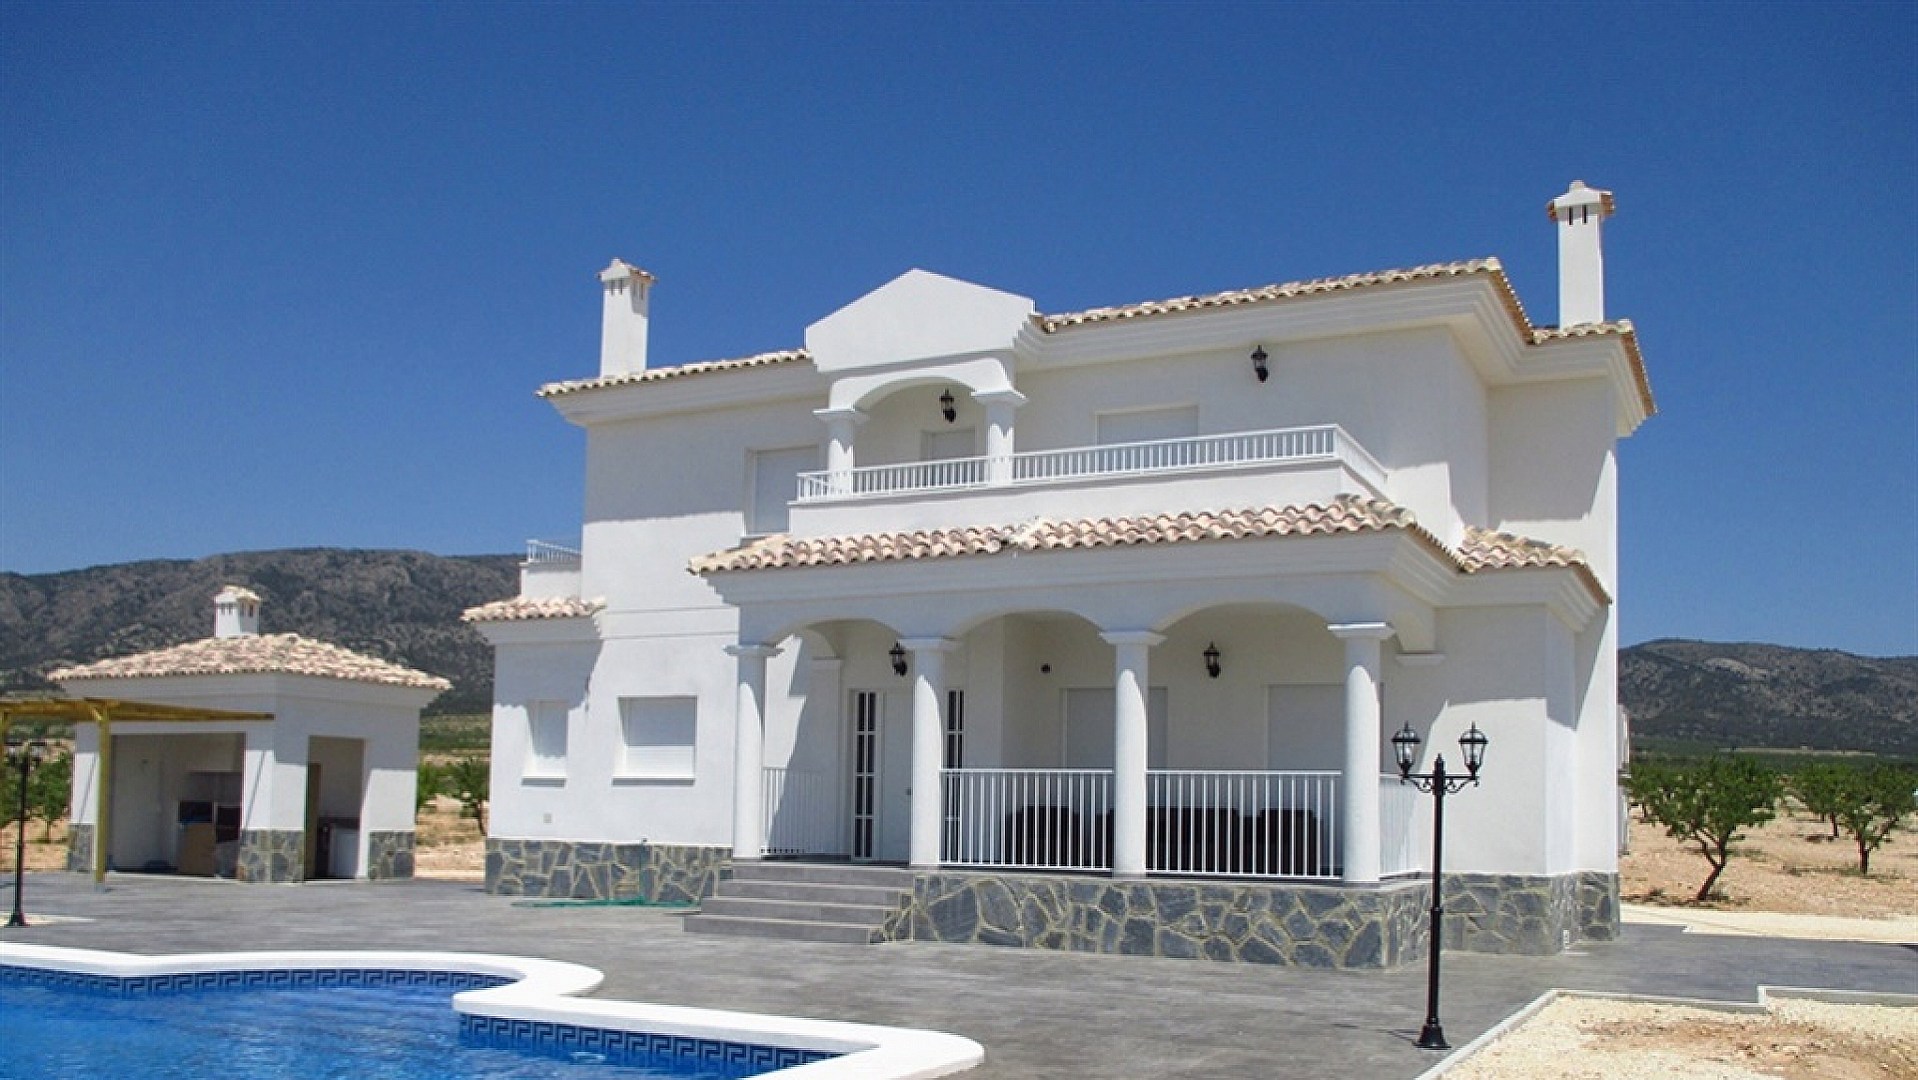 Luxury New Villas with Pool inc. land, licences & legalities. ...